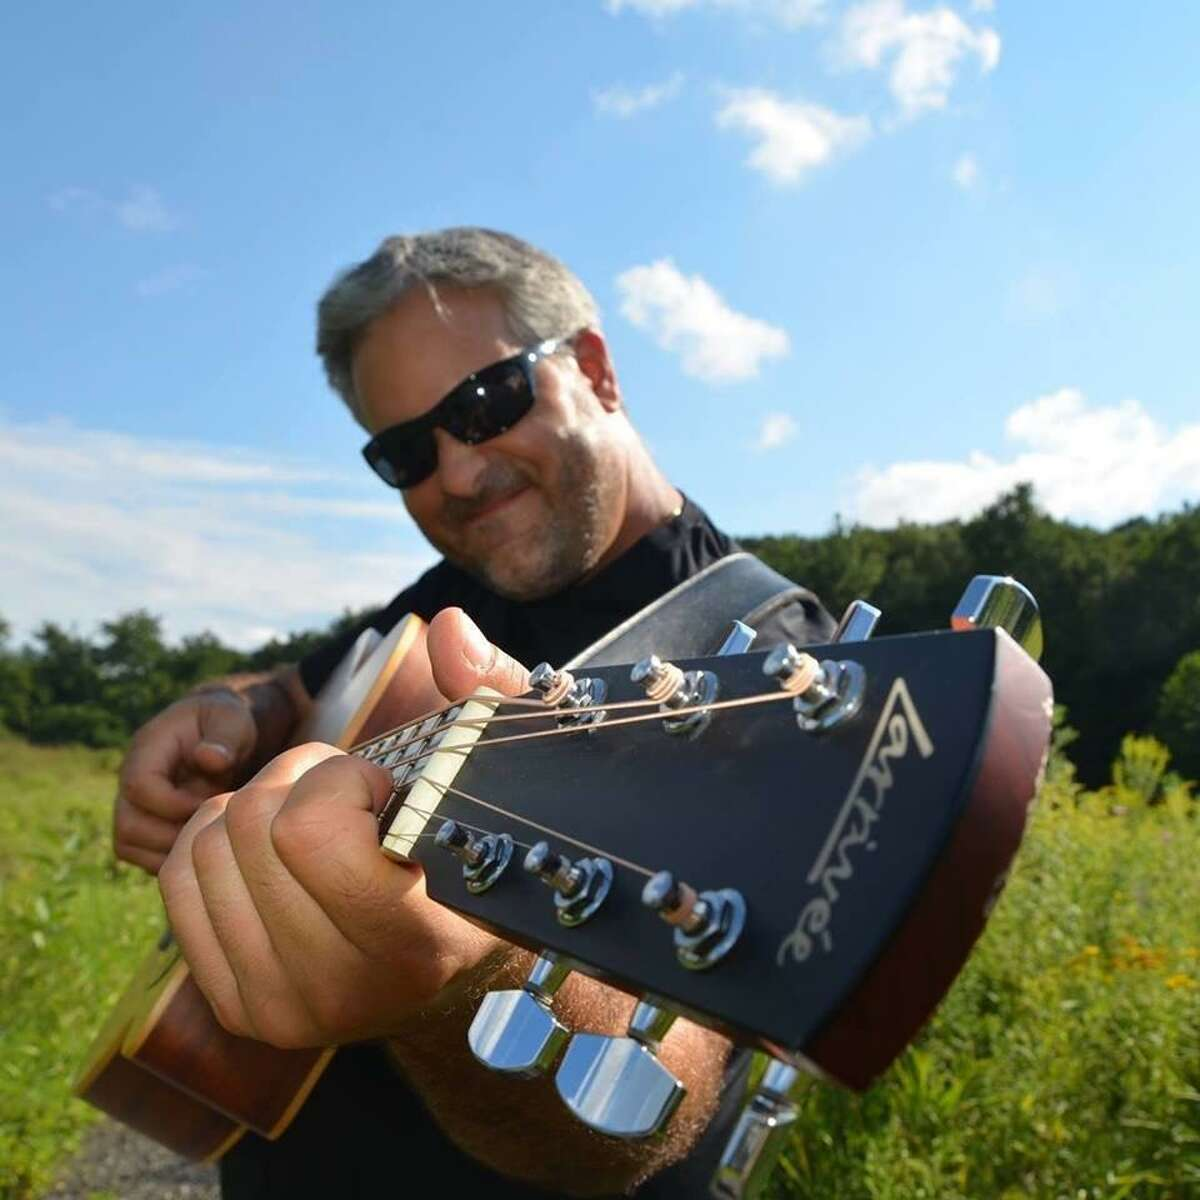 Norwalk guitarist Glenn Roth will be among dozens of performers for the first Norwalk City Limits music festival through Jan. 28. Find out more.